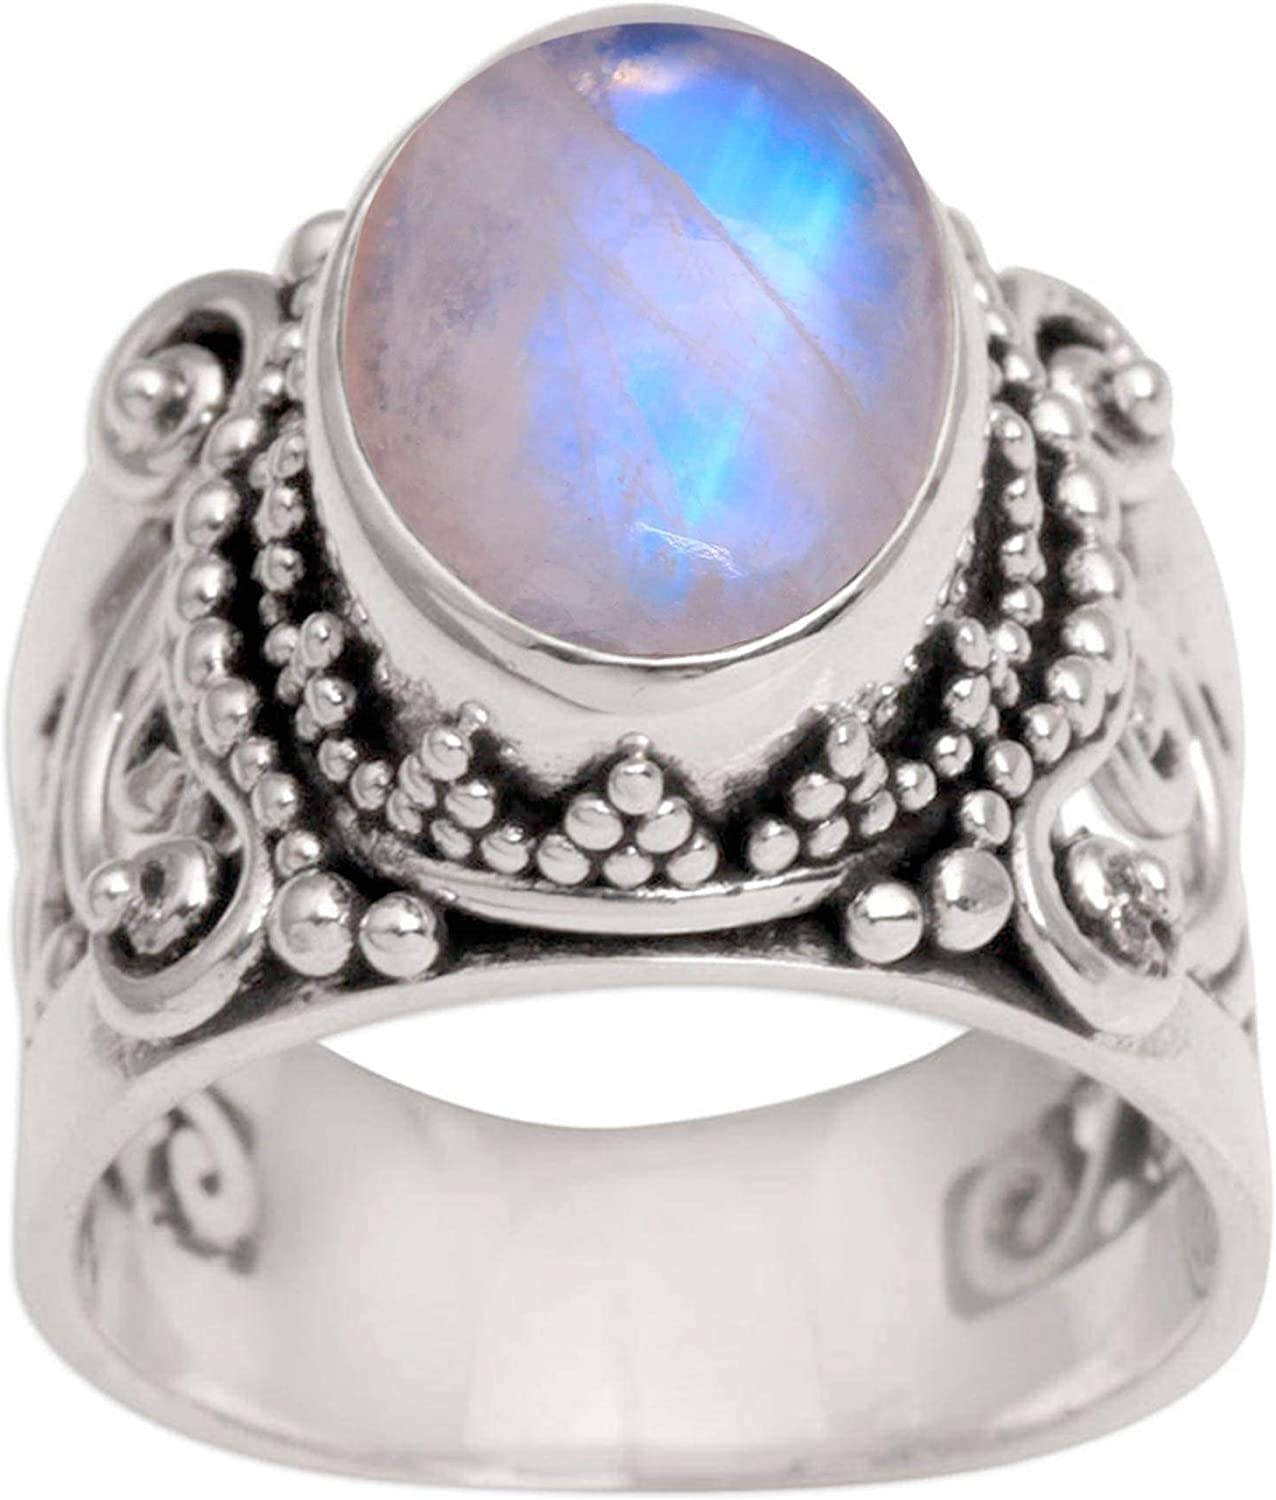 Sterling Silver Ring Rainbow Moonstone Ring 925 Sterling Silver Moonstone Ring Moonstone Silver Ring Ring Size 7.5 Moonstone.